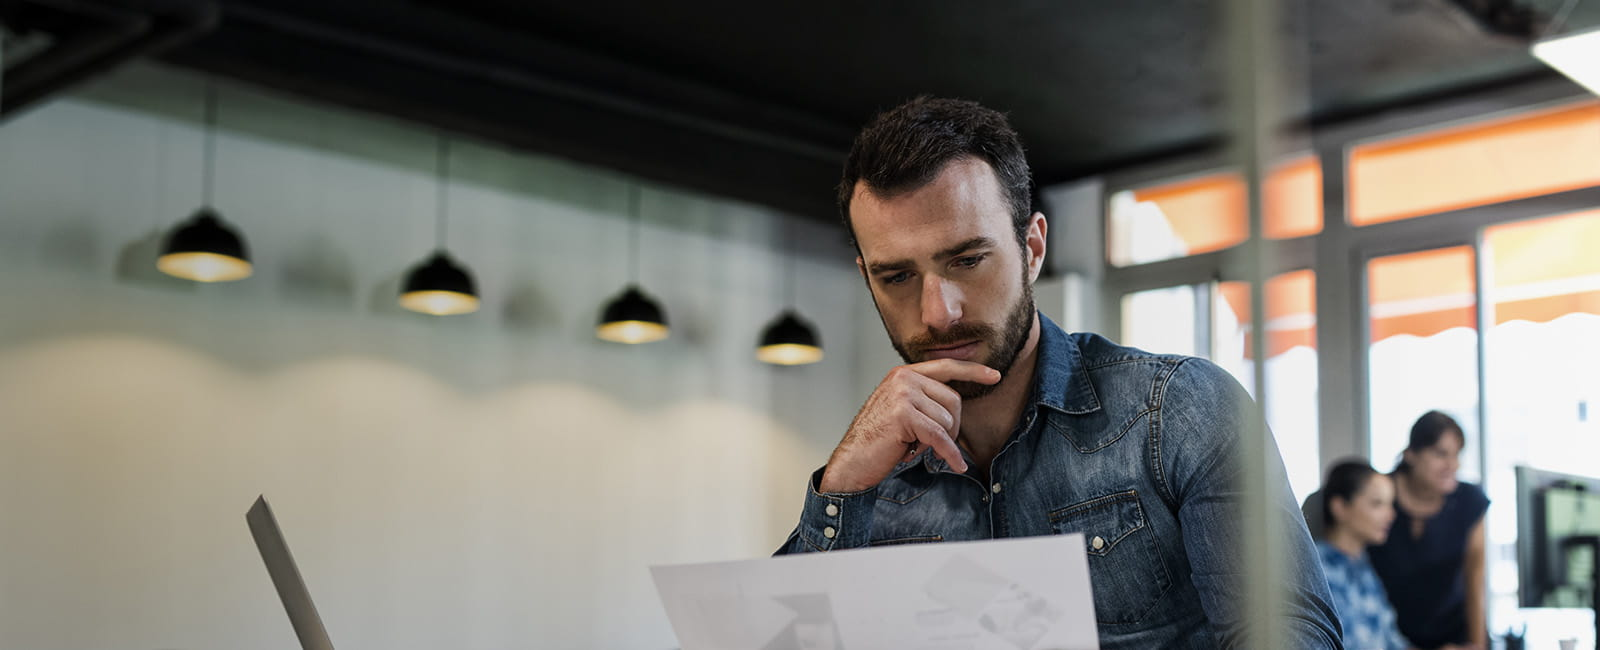 Wide shot of man in a collared shirt looking at paperwork